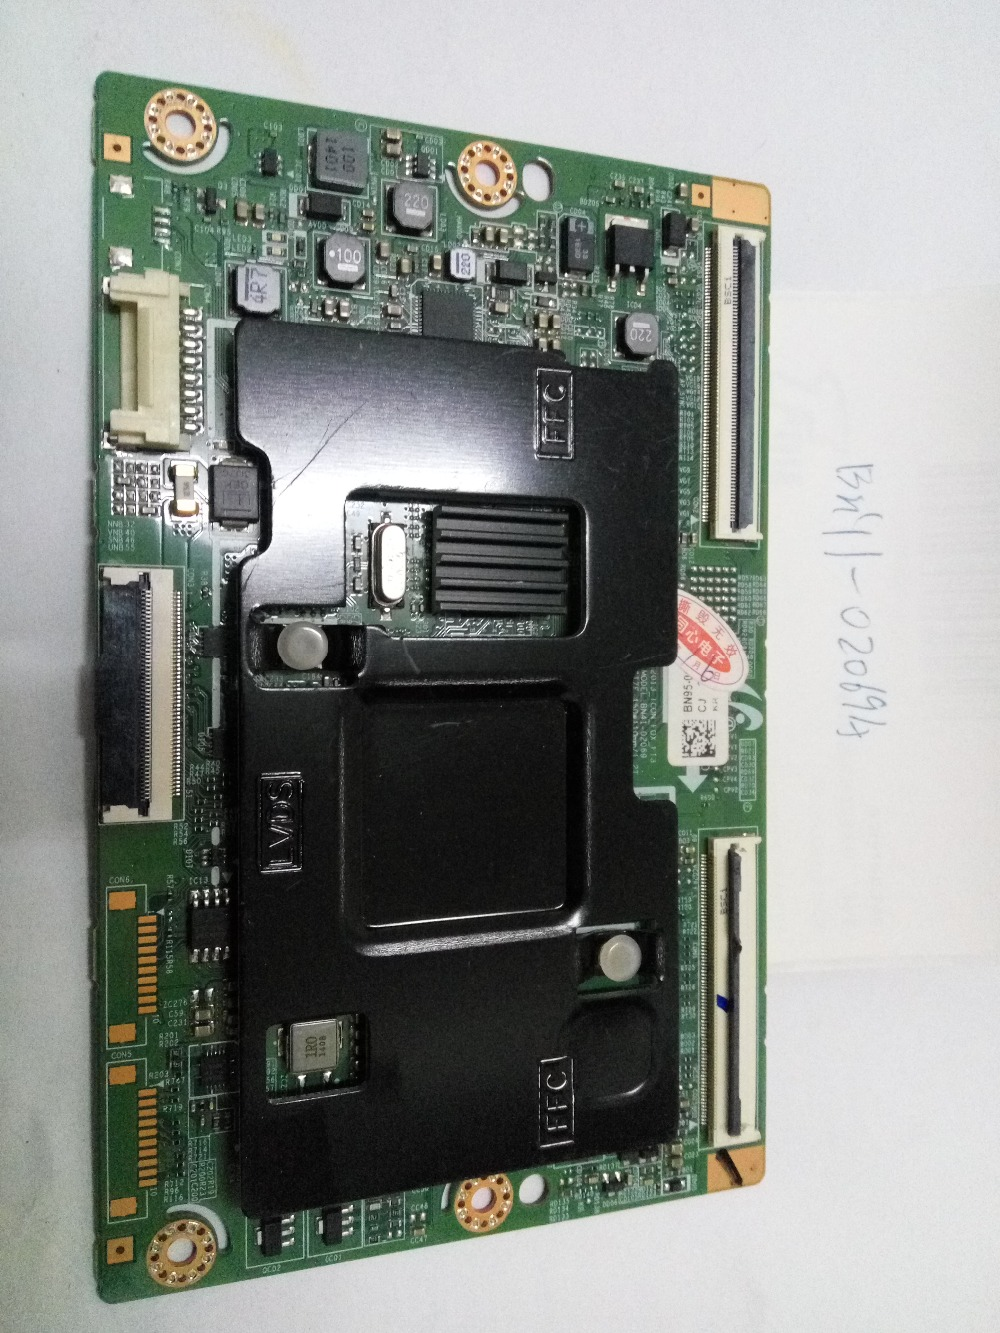 BN41-02069A Logic Board For PLS TELL ME YOUR SIZE UA46F6400AJXXR Connect With Board CY-HF460CSLV2H